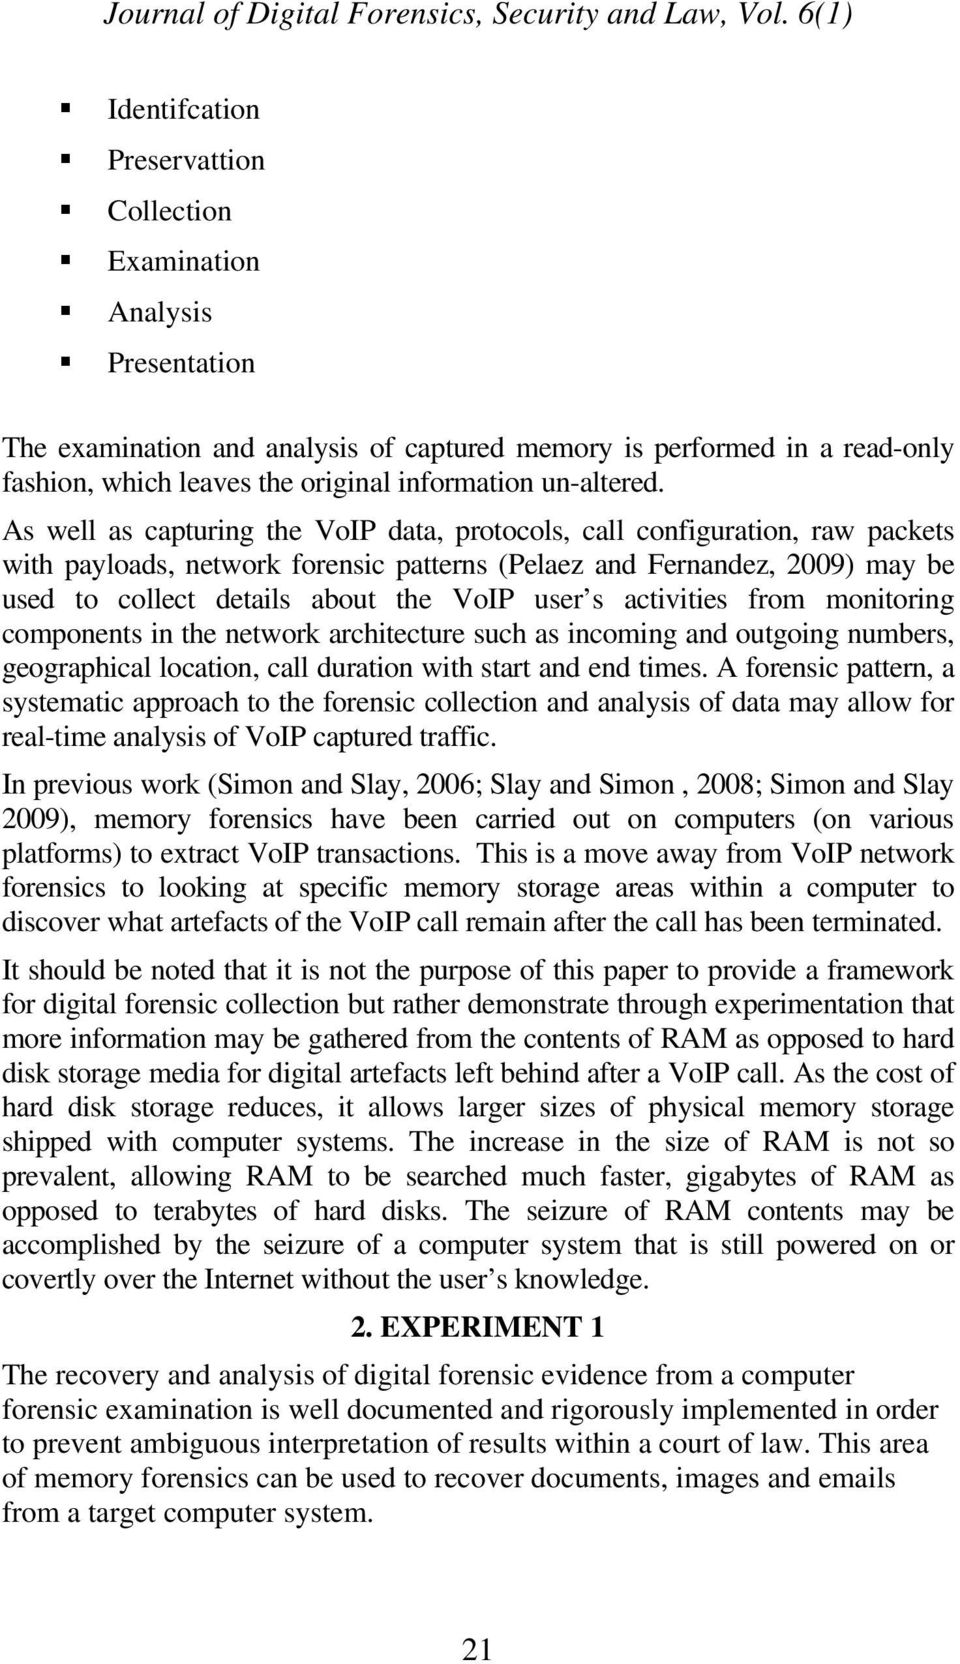 As well as capturing the VoIP data, protocols, call configuration, raw packets with payloads, network forensic patterns (Pelaez and Fernandez, 2009) may be used to collect details about the VoIP user